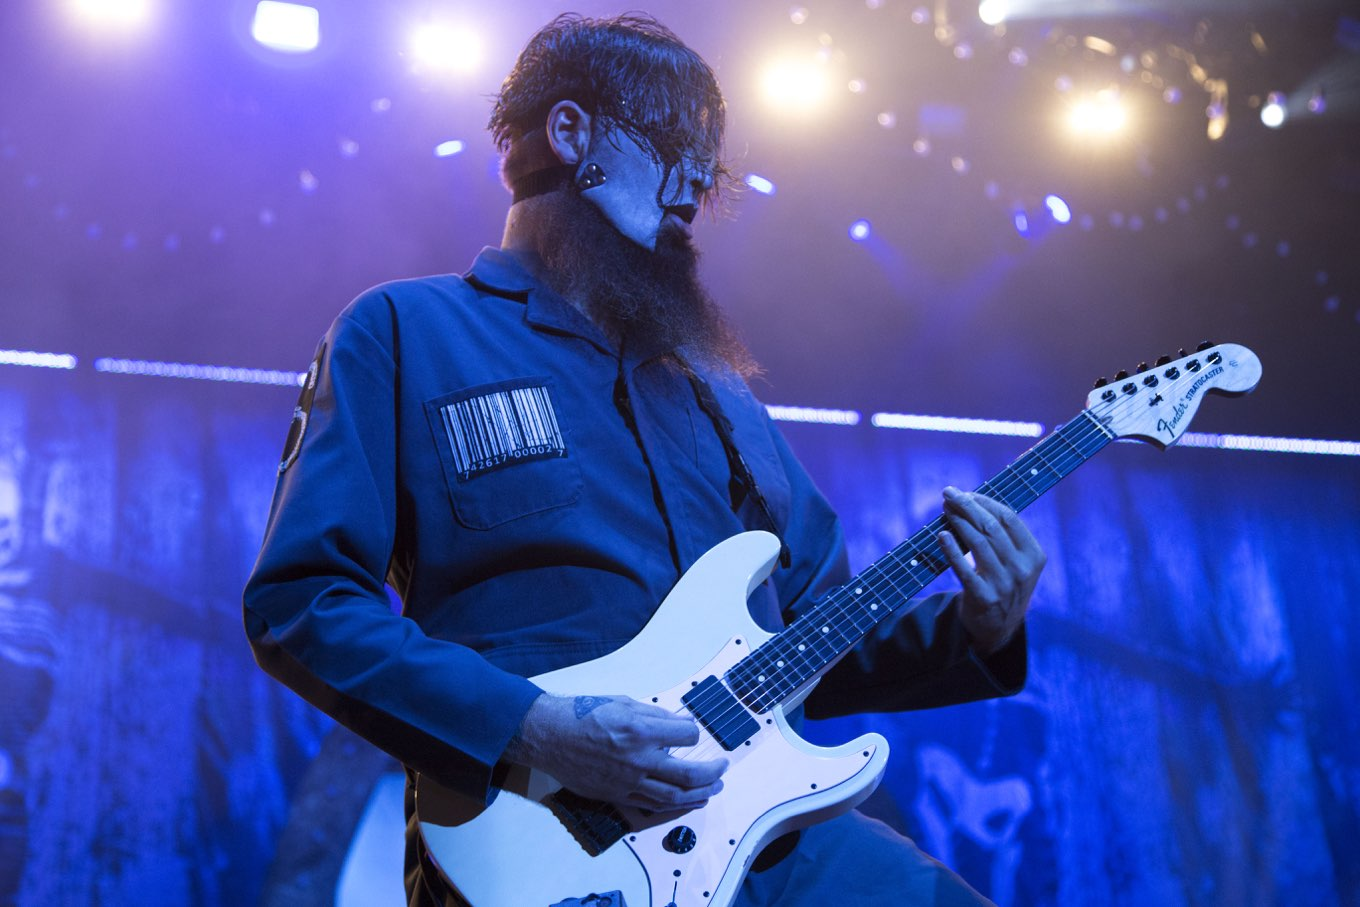 Discover New Tickets: Slipknot, Zac Brown Band & More